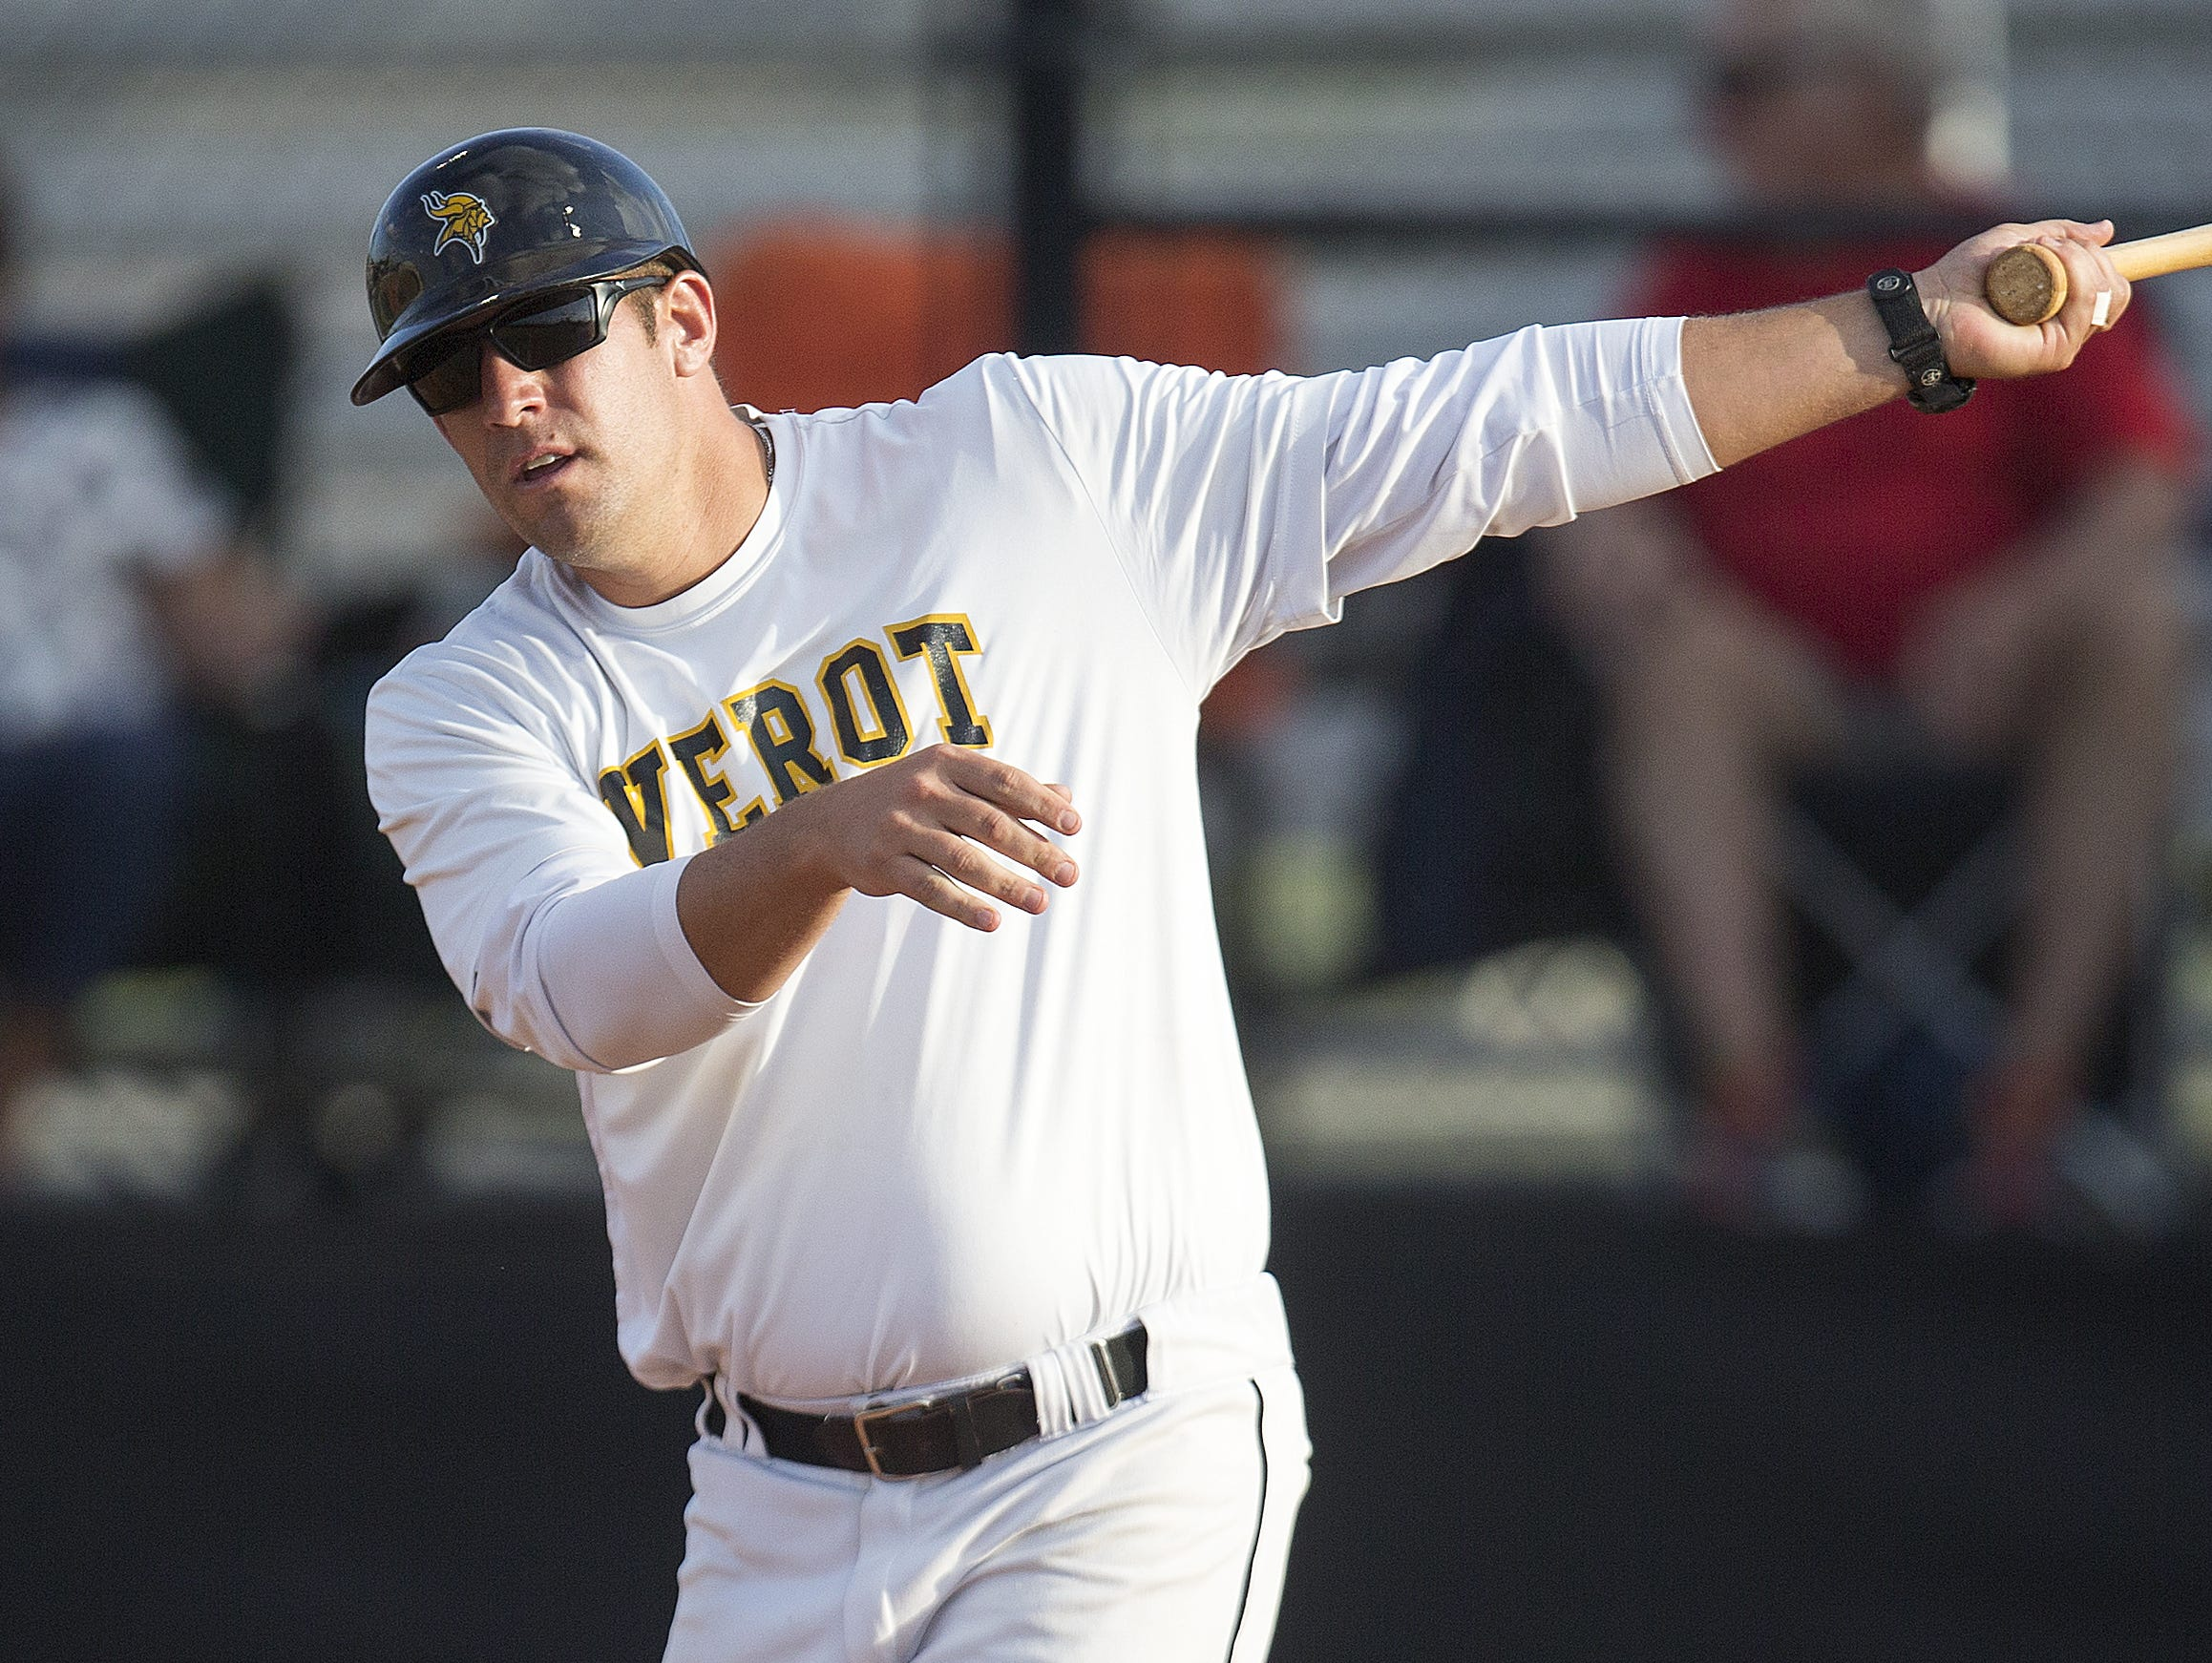 Bishop Verot High School baseball coach David Nelson leads fielding drills before a game recently at Duane Swanson Field in Fort Myers. (4/22/16)